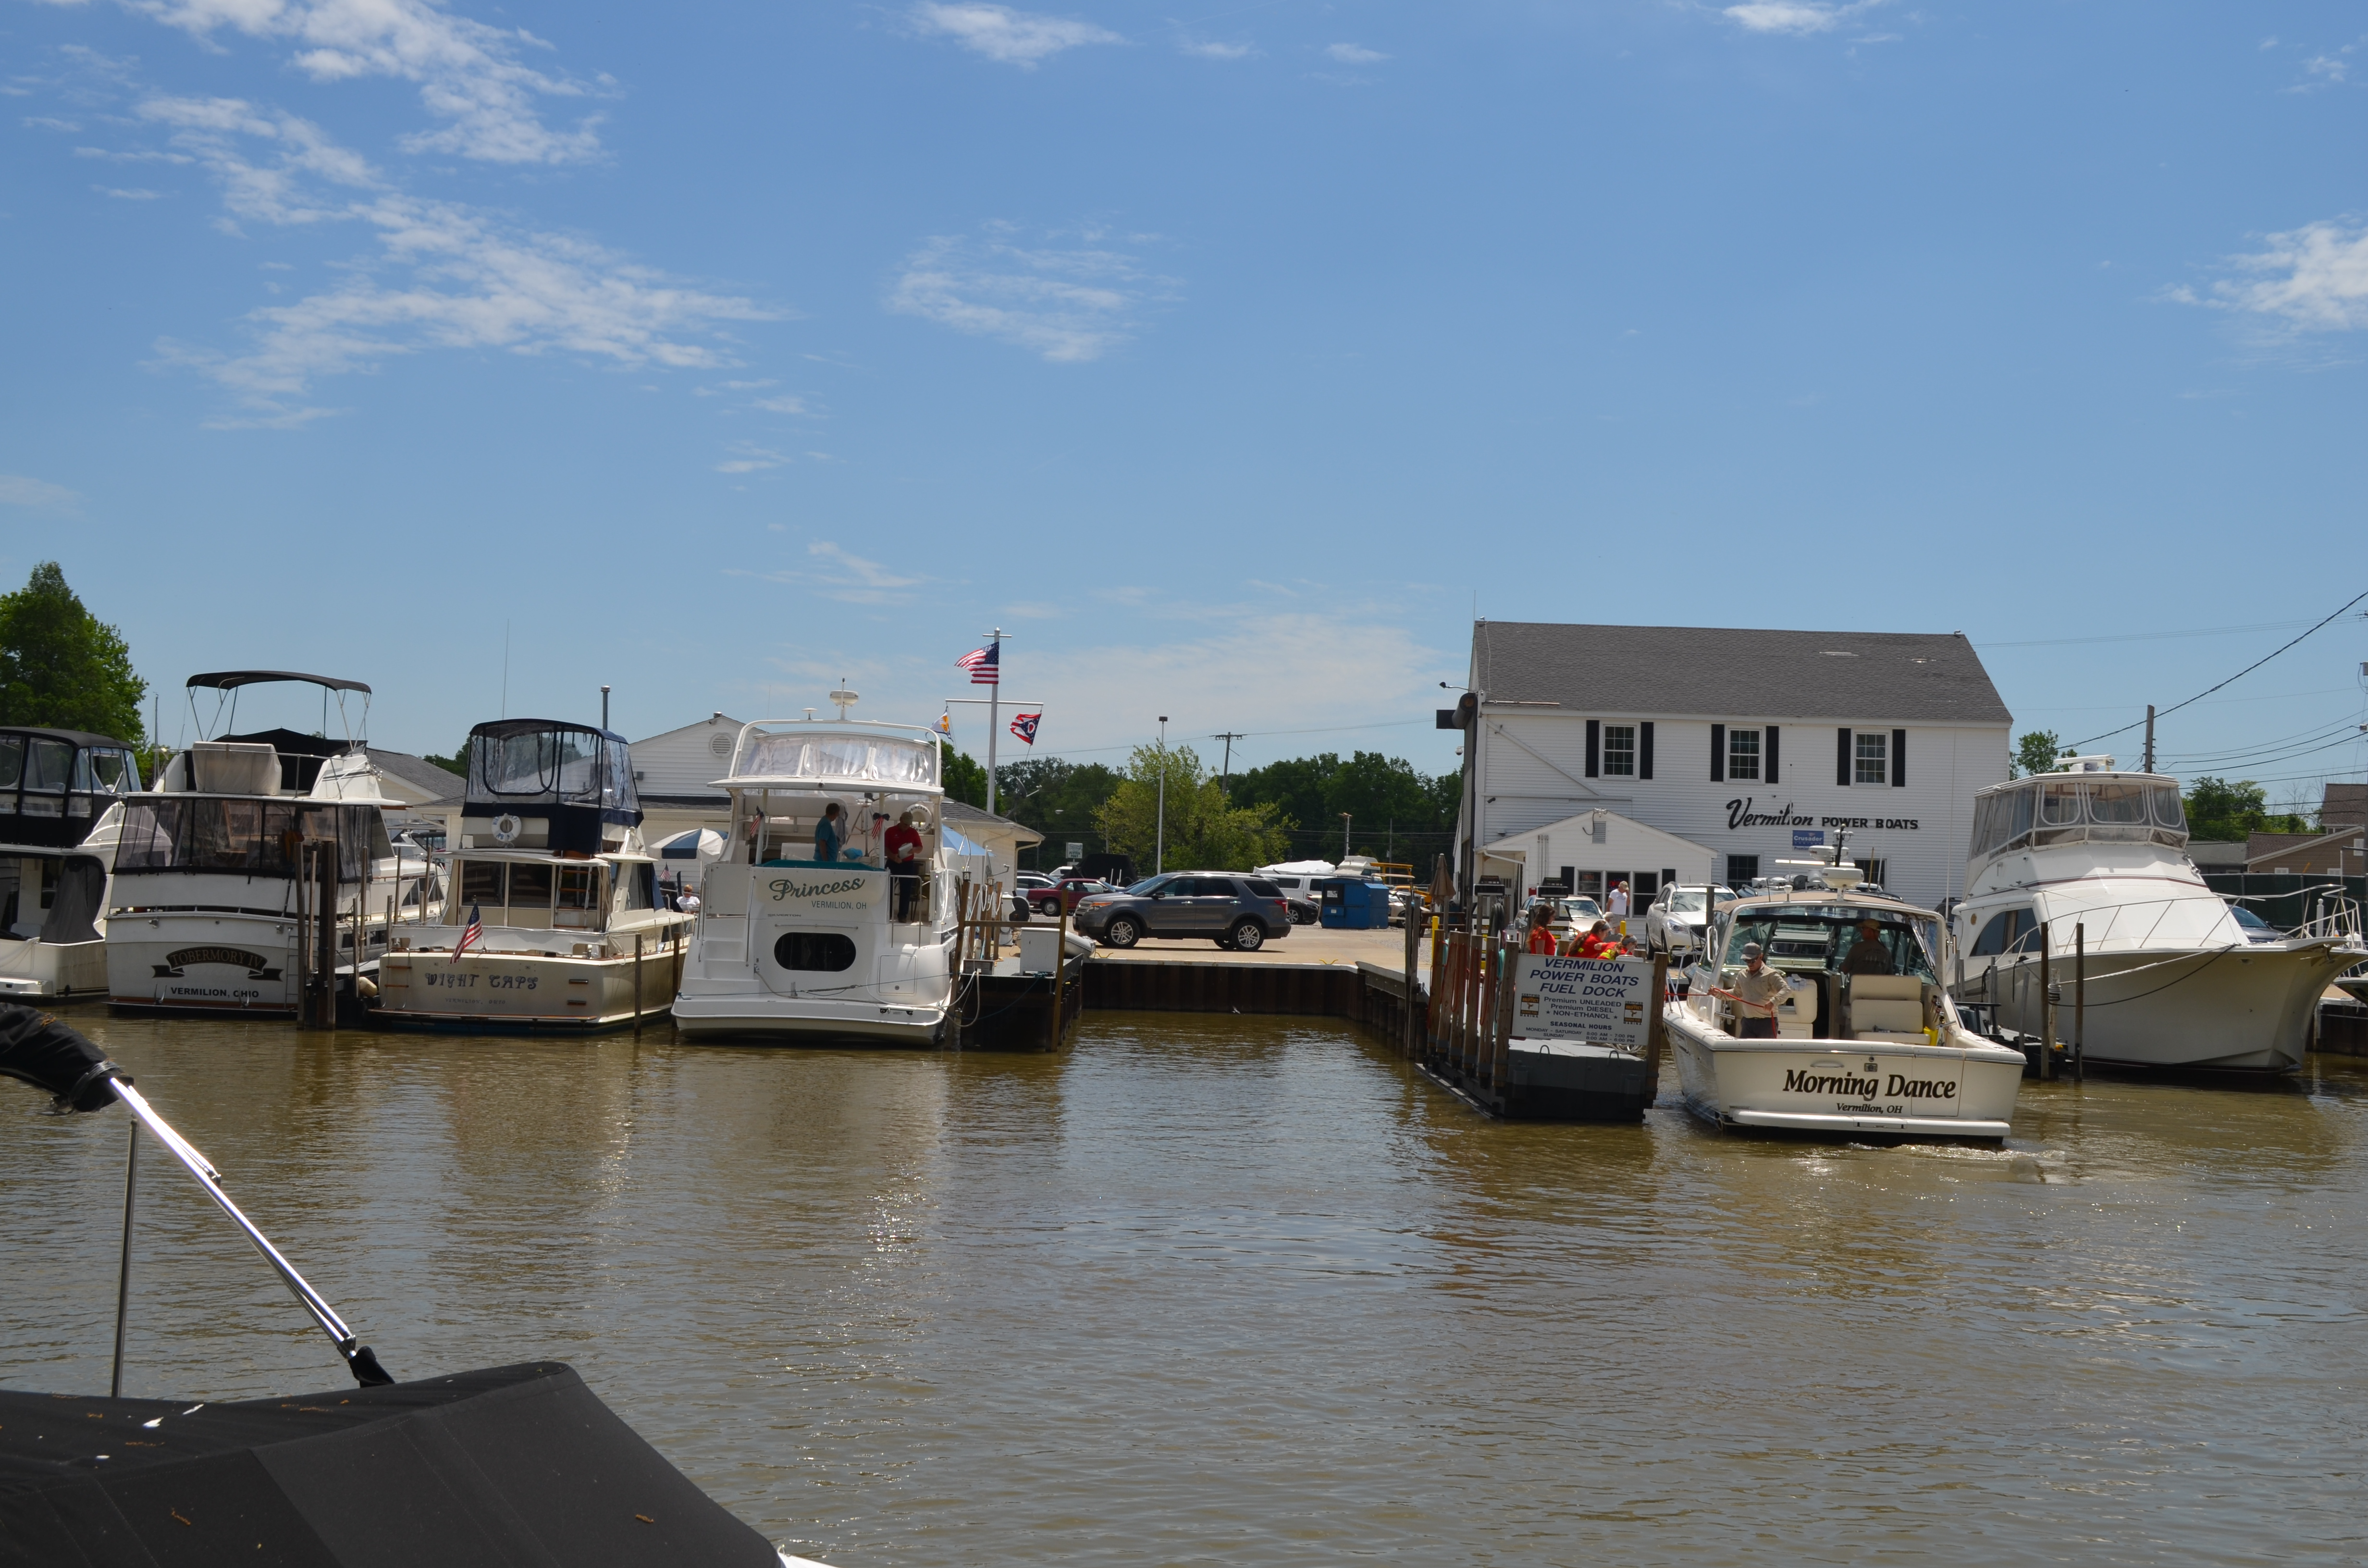 Wiring Floating Boat Dock Solutions For A Diagrams Electrical At Fuel Docks Marina Diagram News